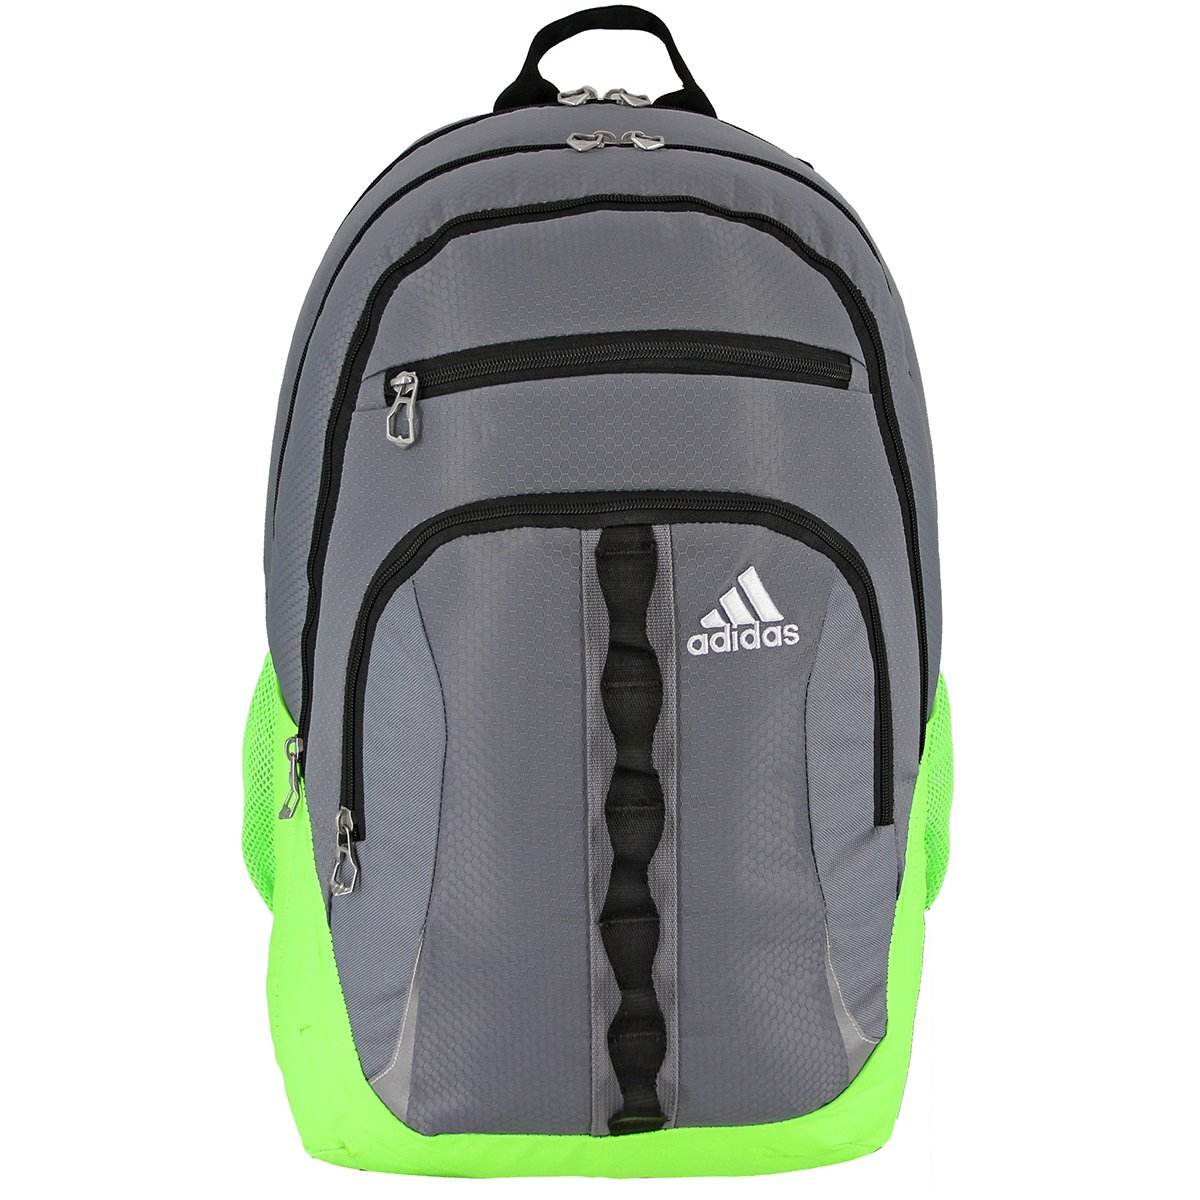 2827856db99c Amazon.com  adidas Prime Backpack  Sports   Outdoors